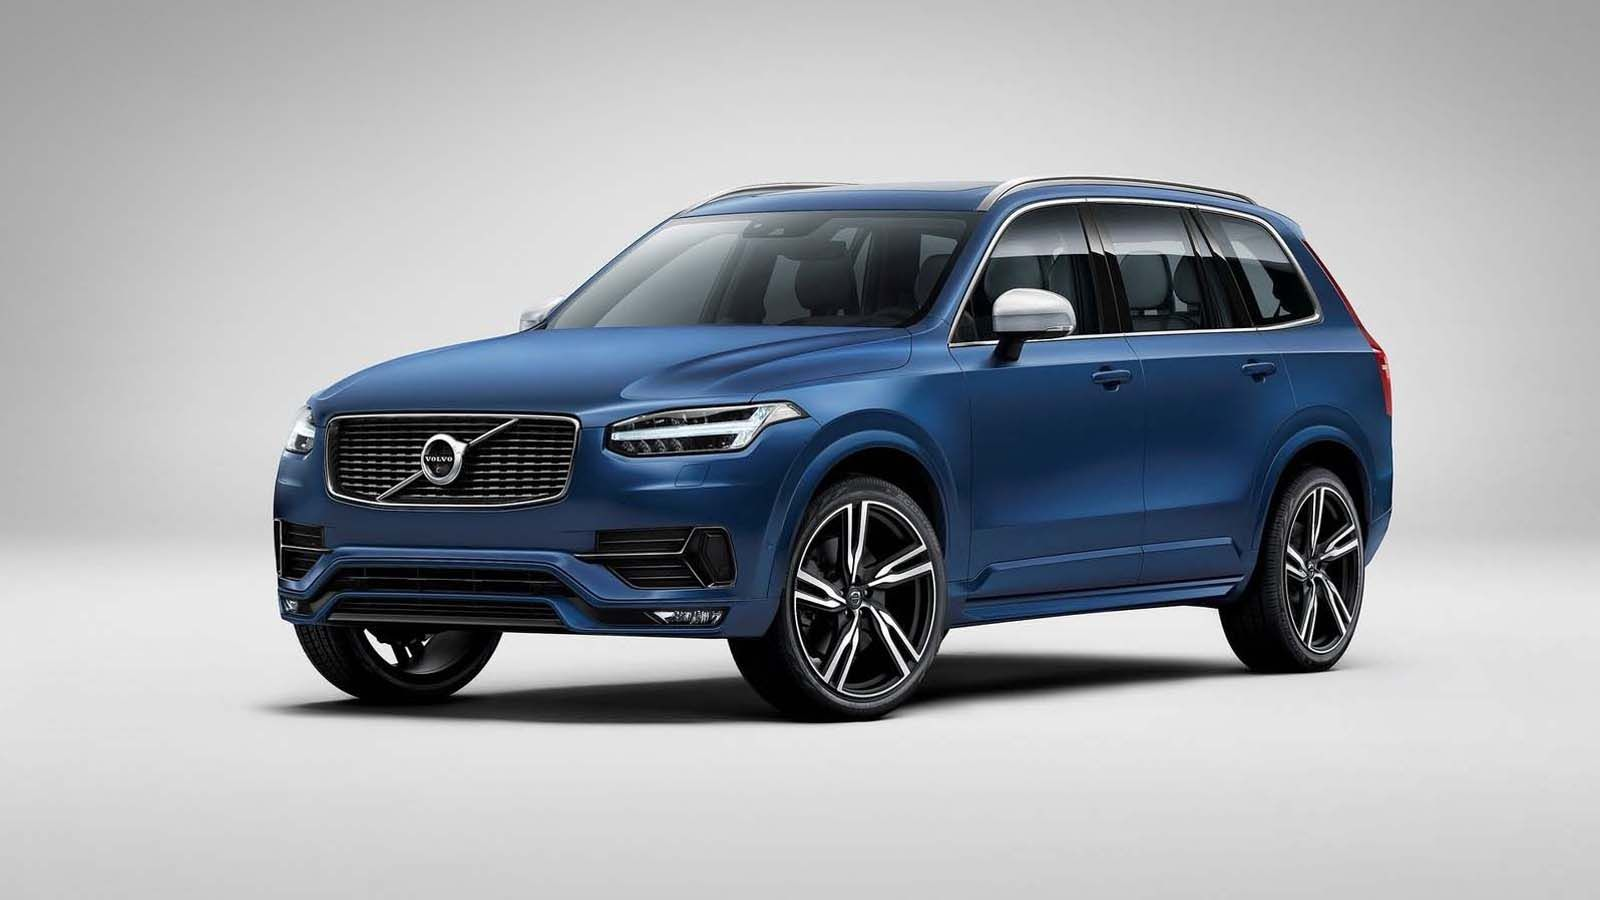 Win a Volvo XC90 T8 R-Design - Ticket Price £7.00